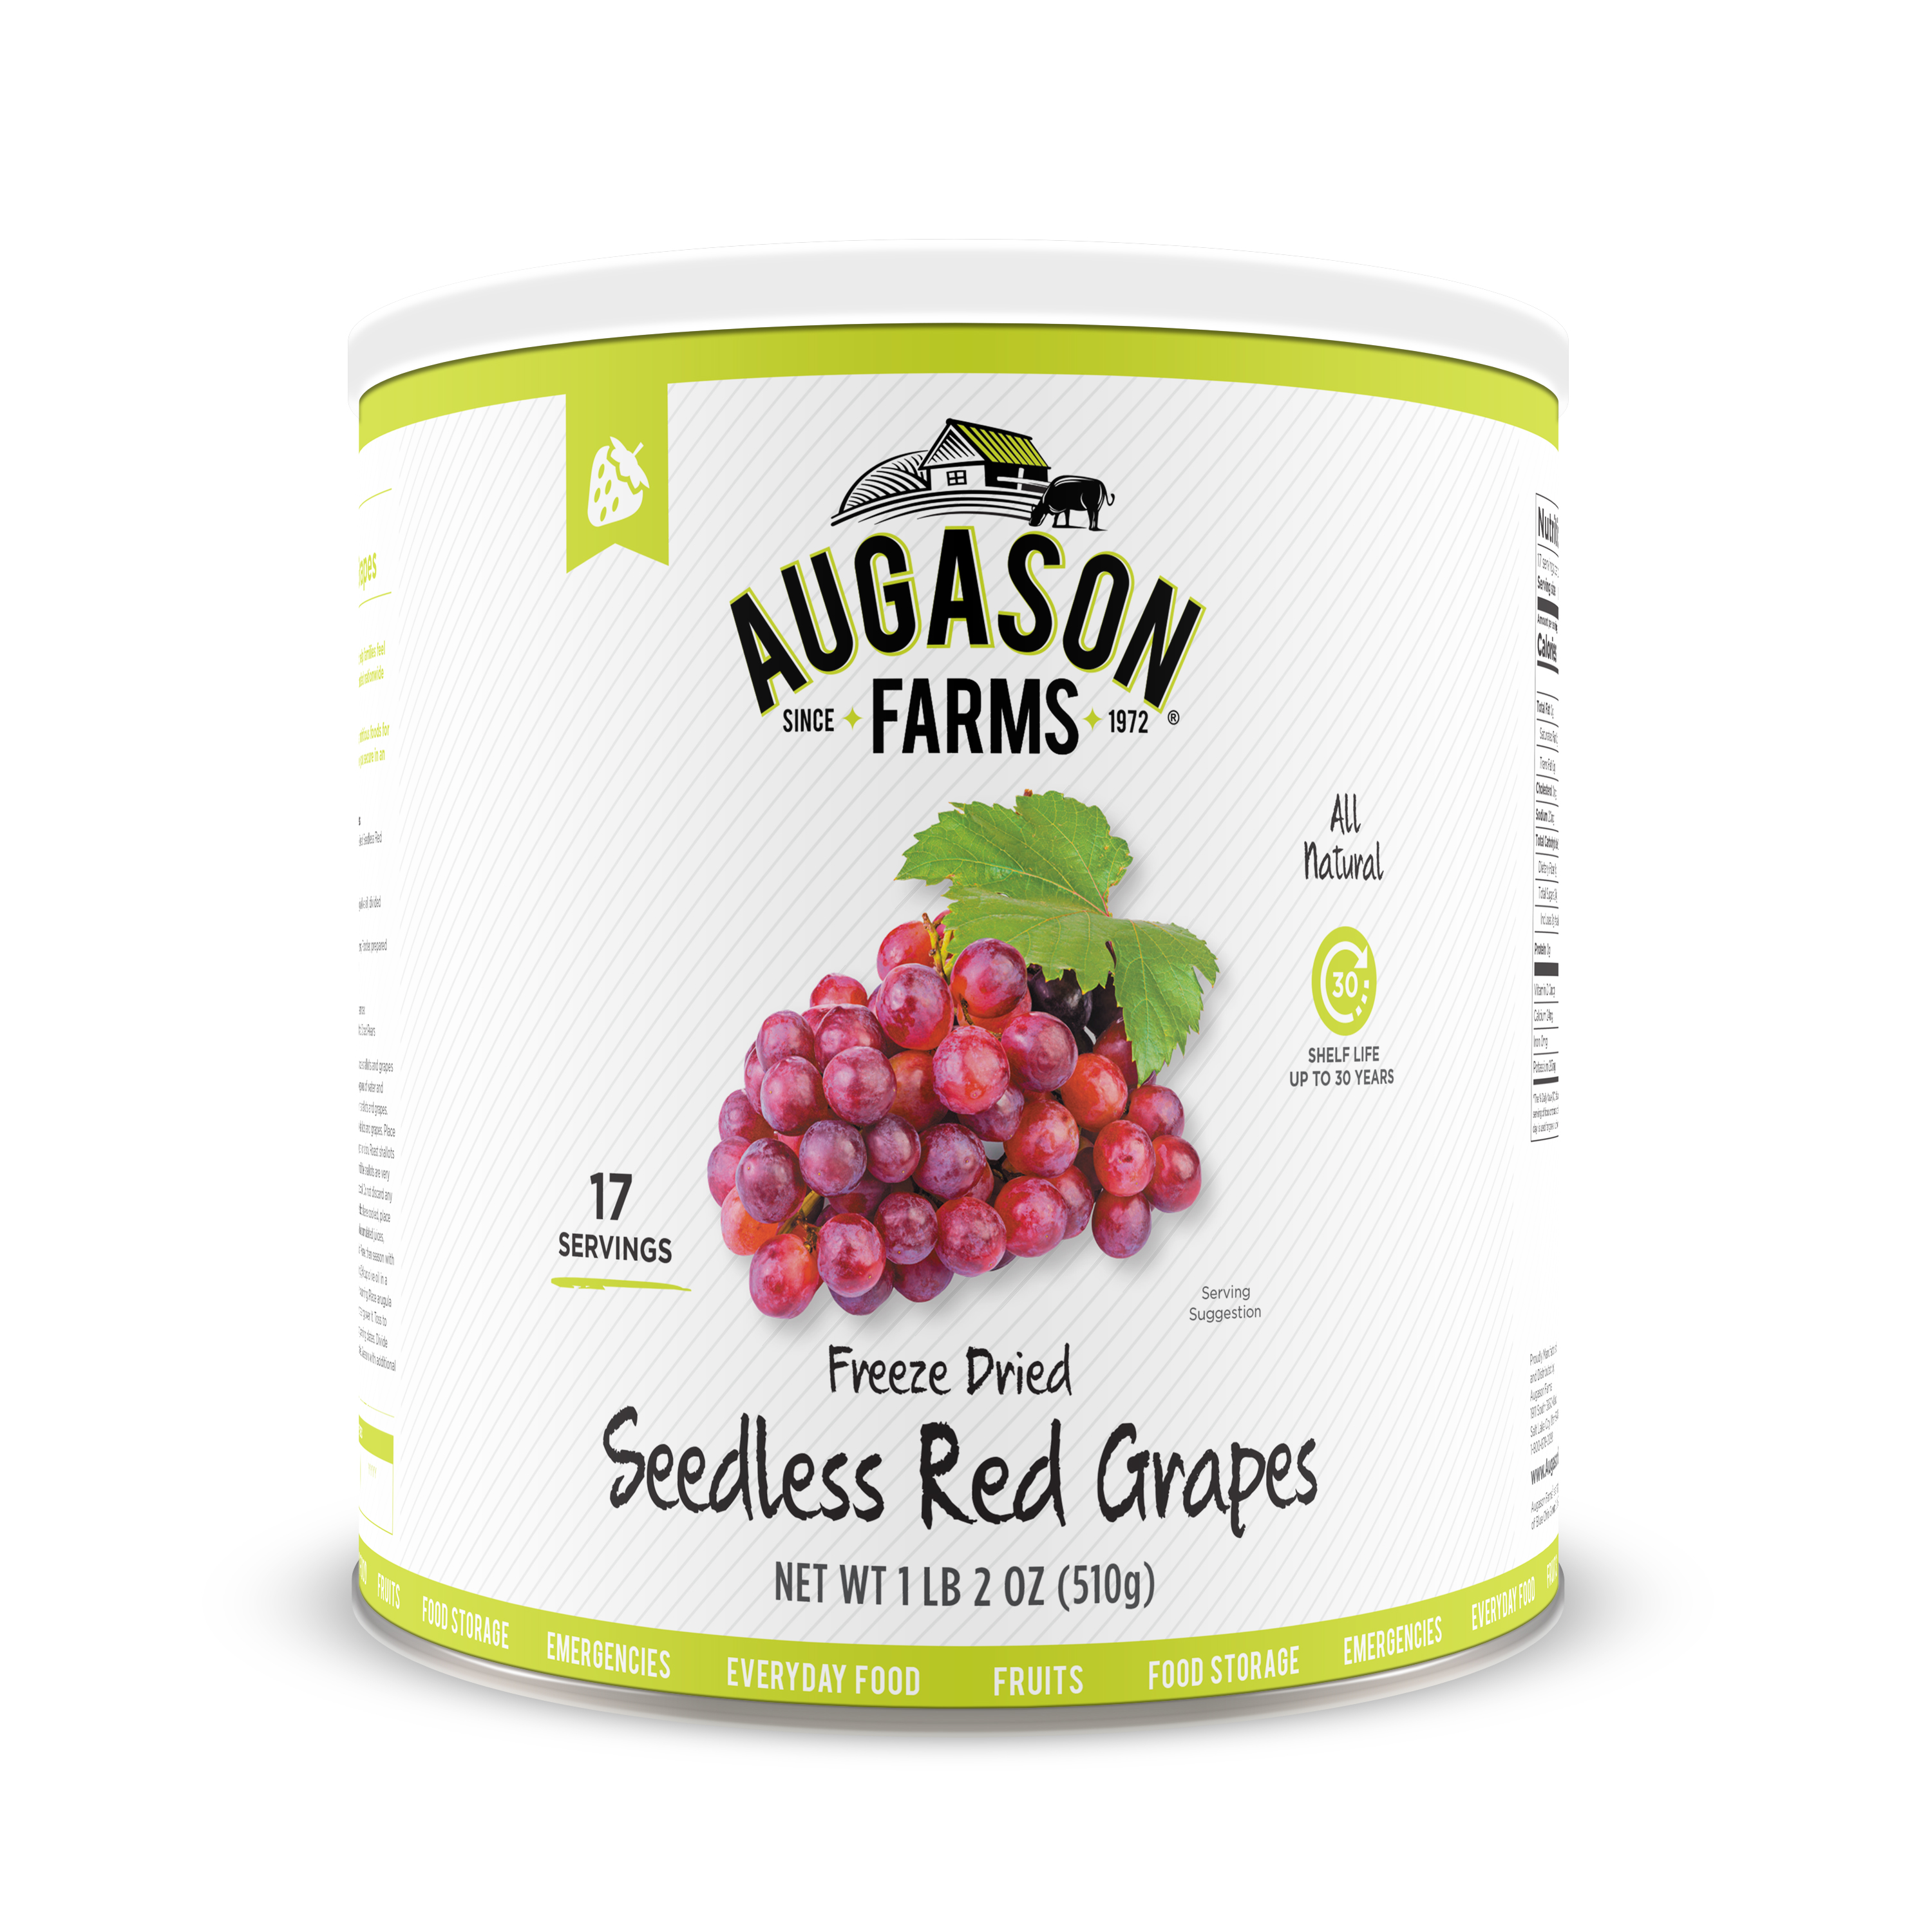 Augason Farms Freeze Dried Seedless Red Grapes 1 lb 2 oz No. 10 Can by Blue Chip Group